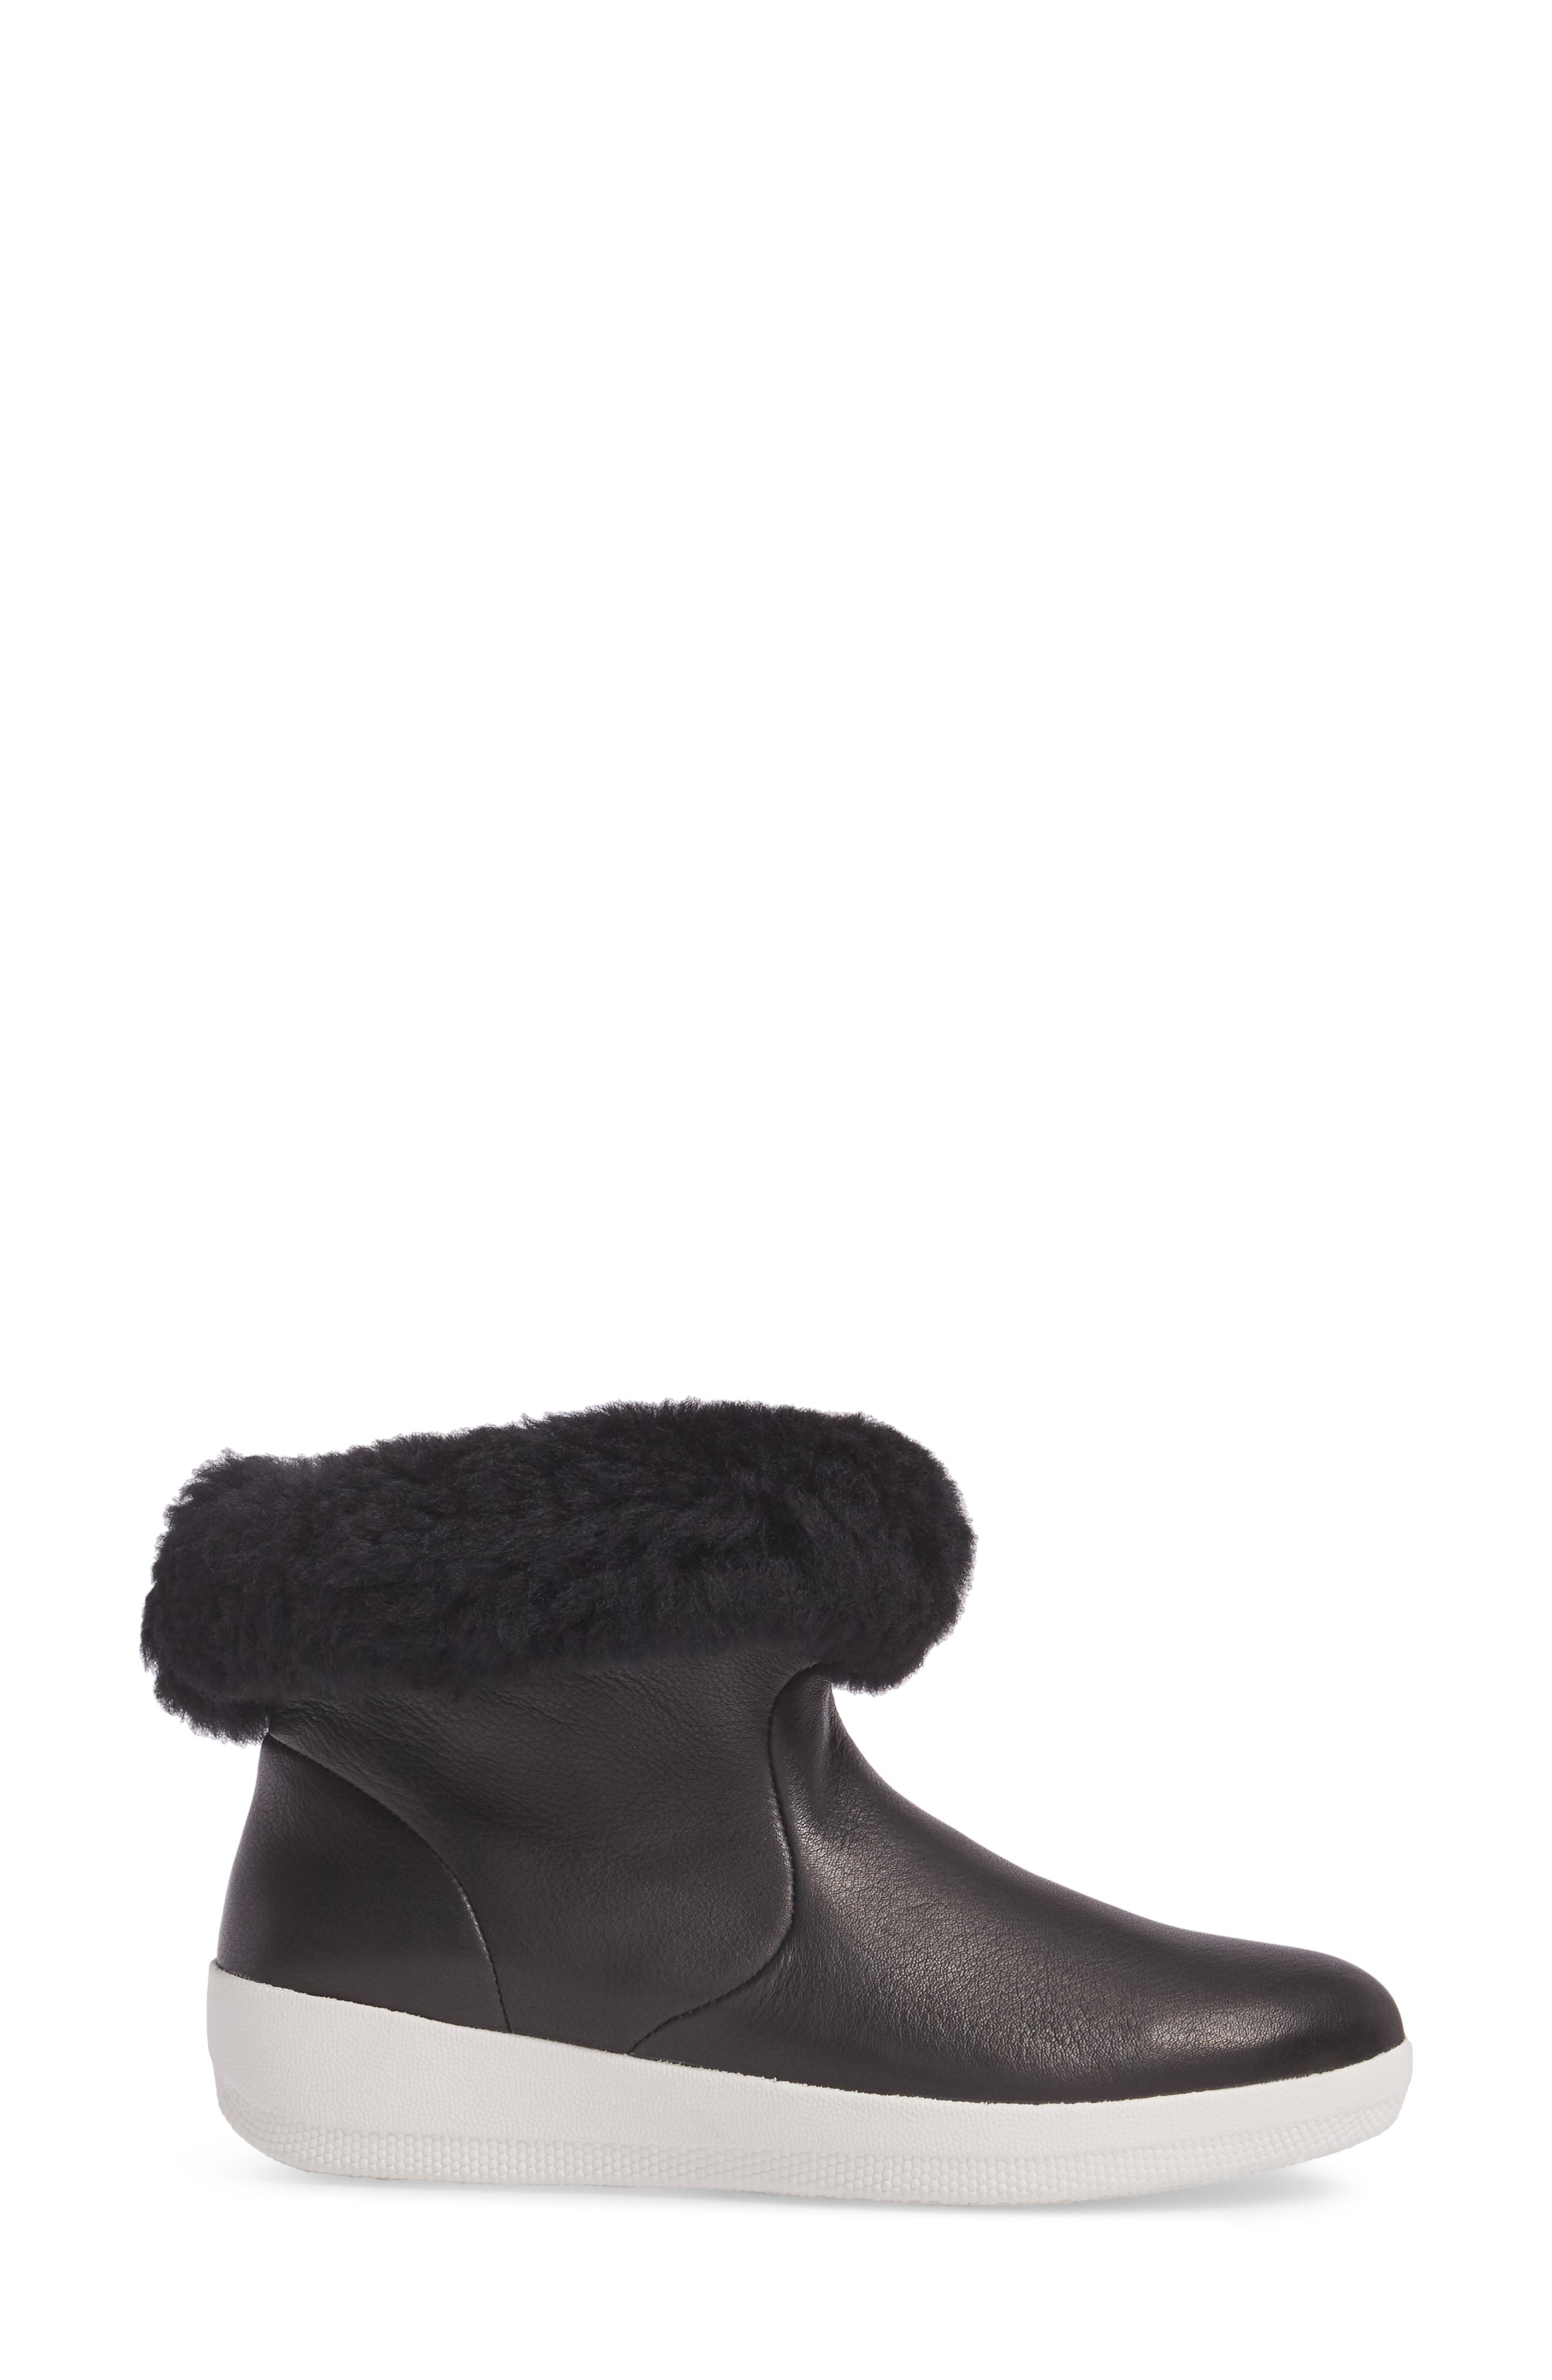 Skatebootie<sup>™</sup> with Genuine Shearling Cuff,                             Alternate thumbnail 5, color,